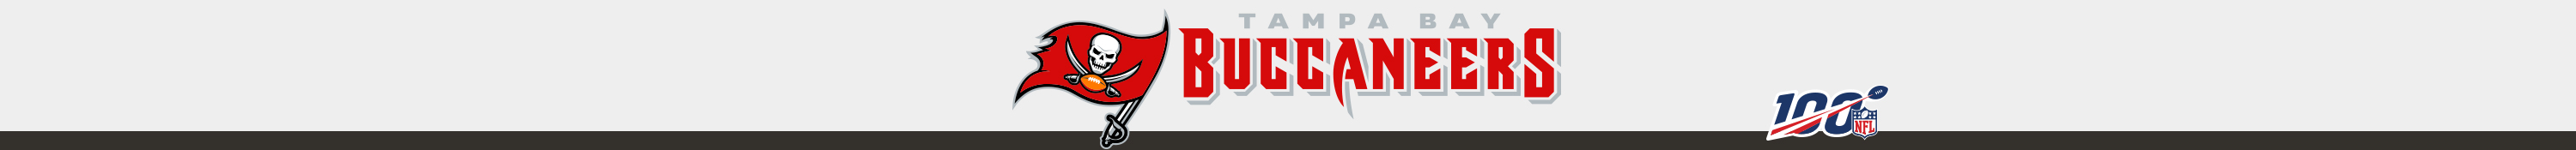 Buccaneers Single Game Tickets | Tampa Bay Buccaneers  for sale